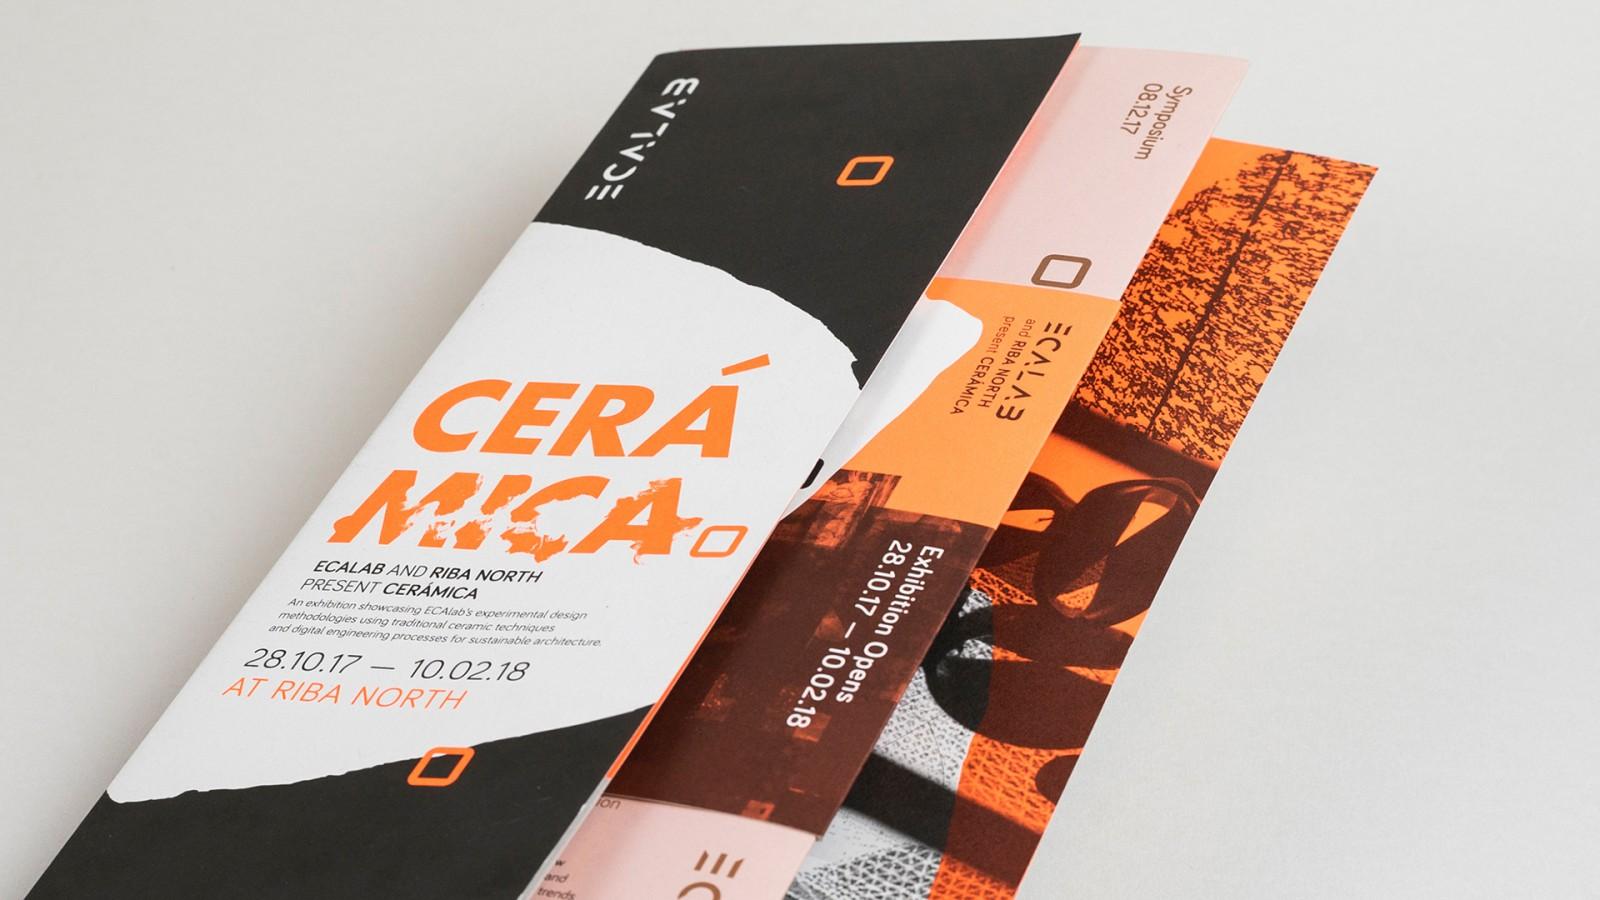 image for Cerámica @ RIBA North project